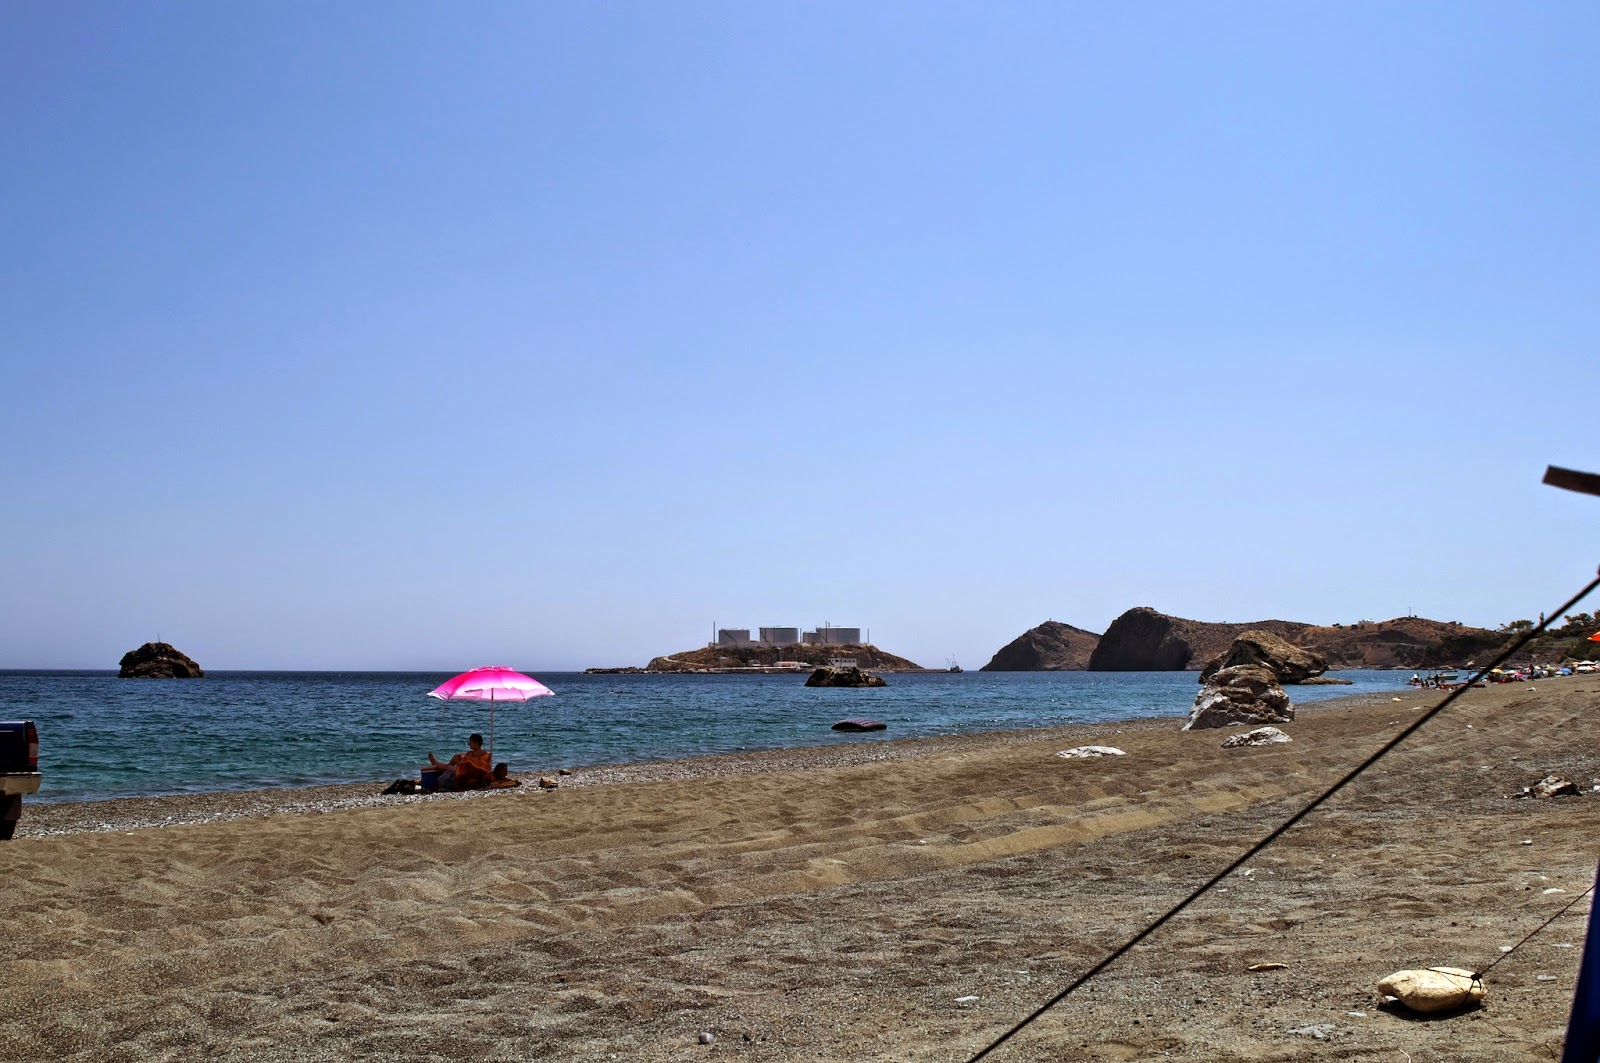 View of the beach south of the Crete, kaloi limenes in Greece.